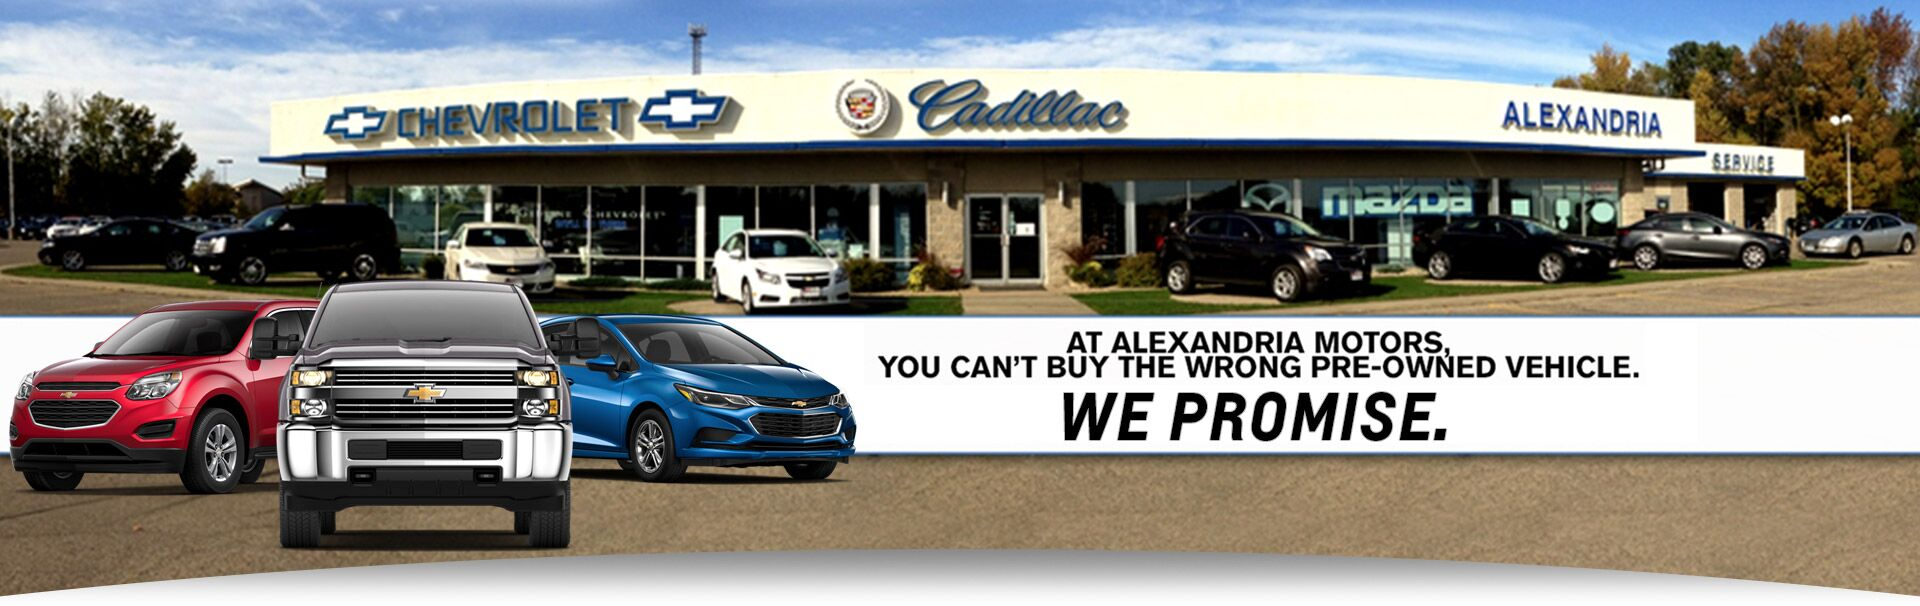 Alexandria Mn New Cadillac Chevrolet Mazda Used Car Dealership Alexandria Motors